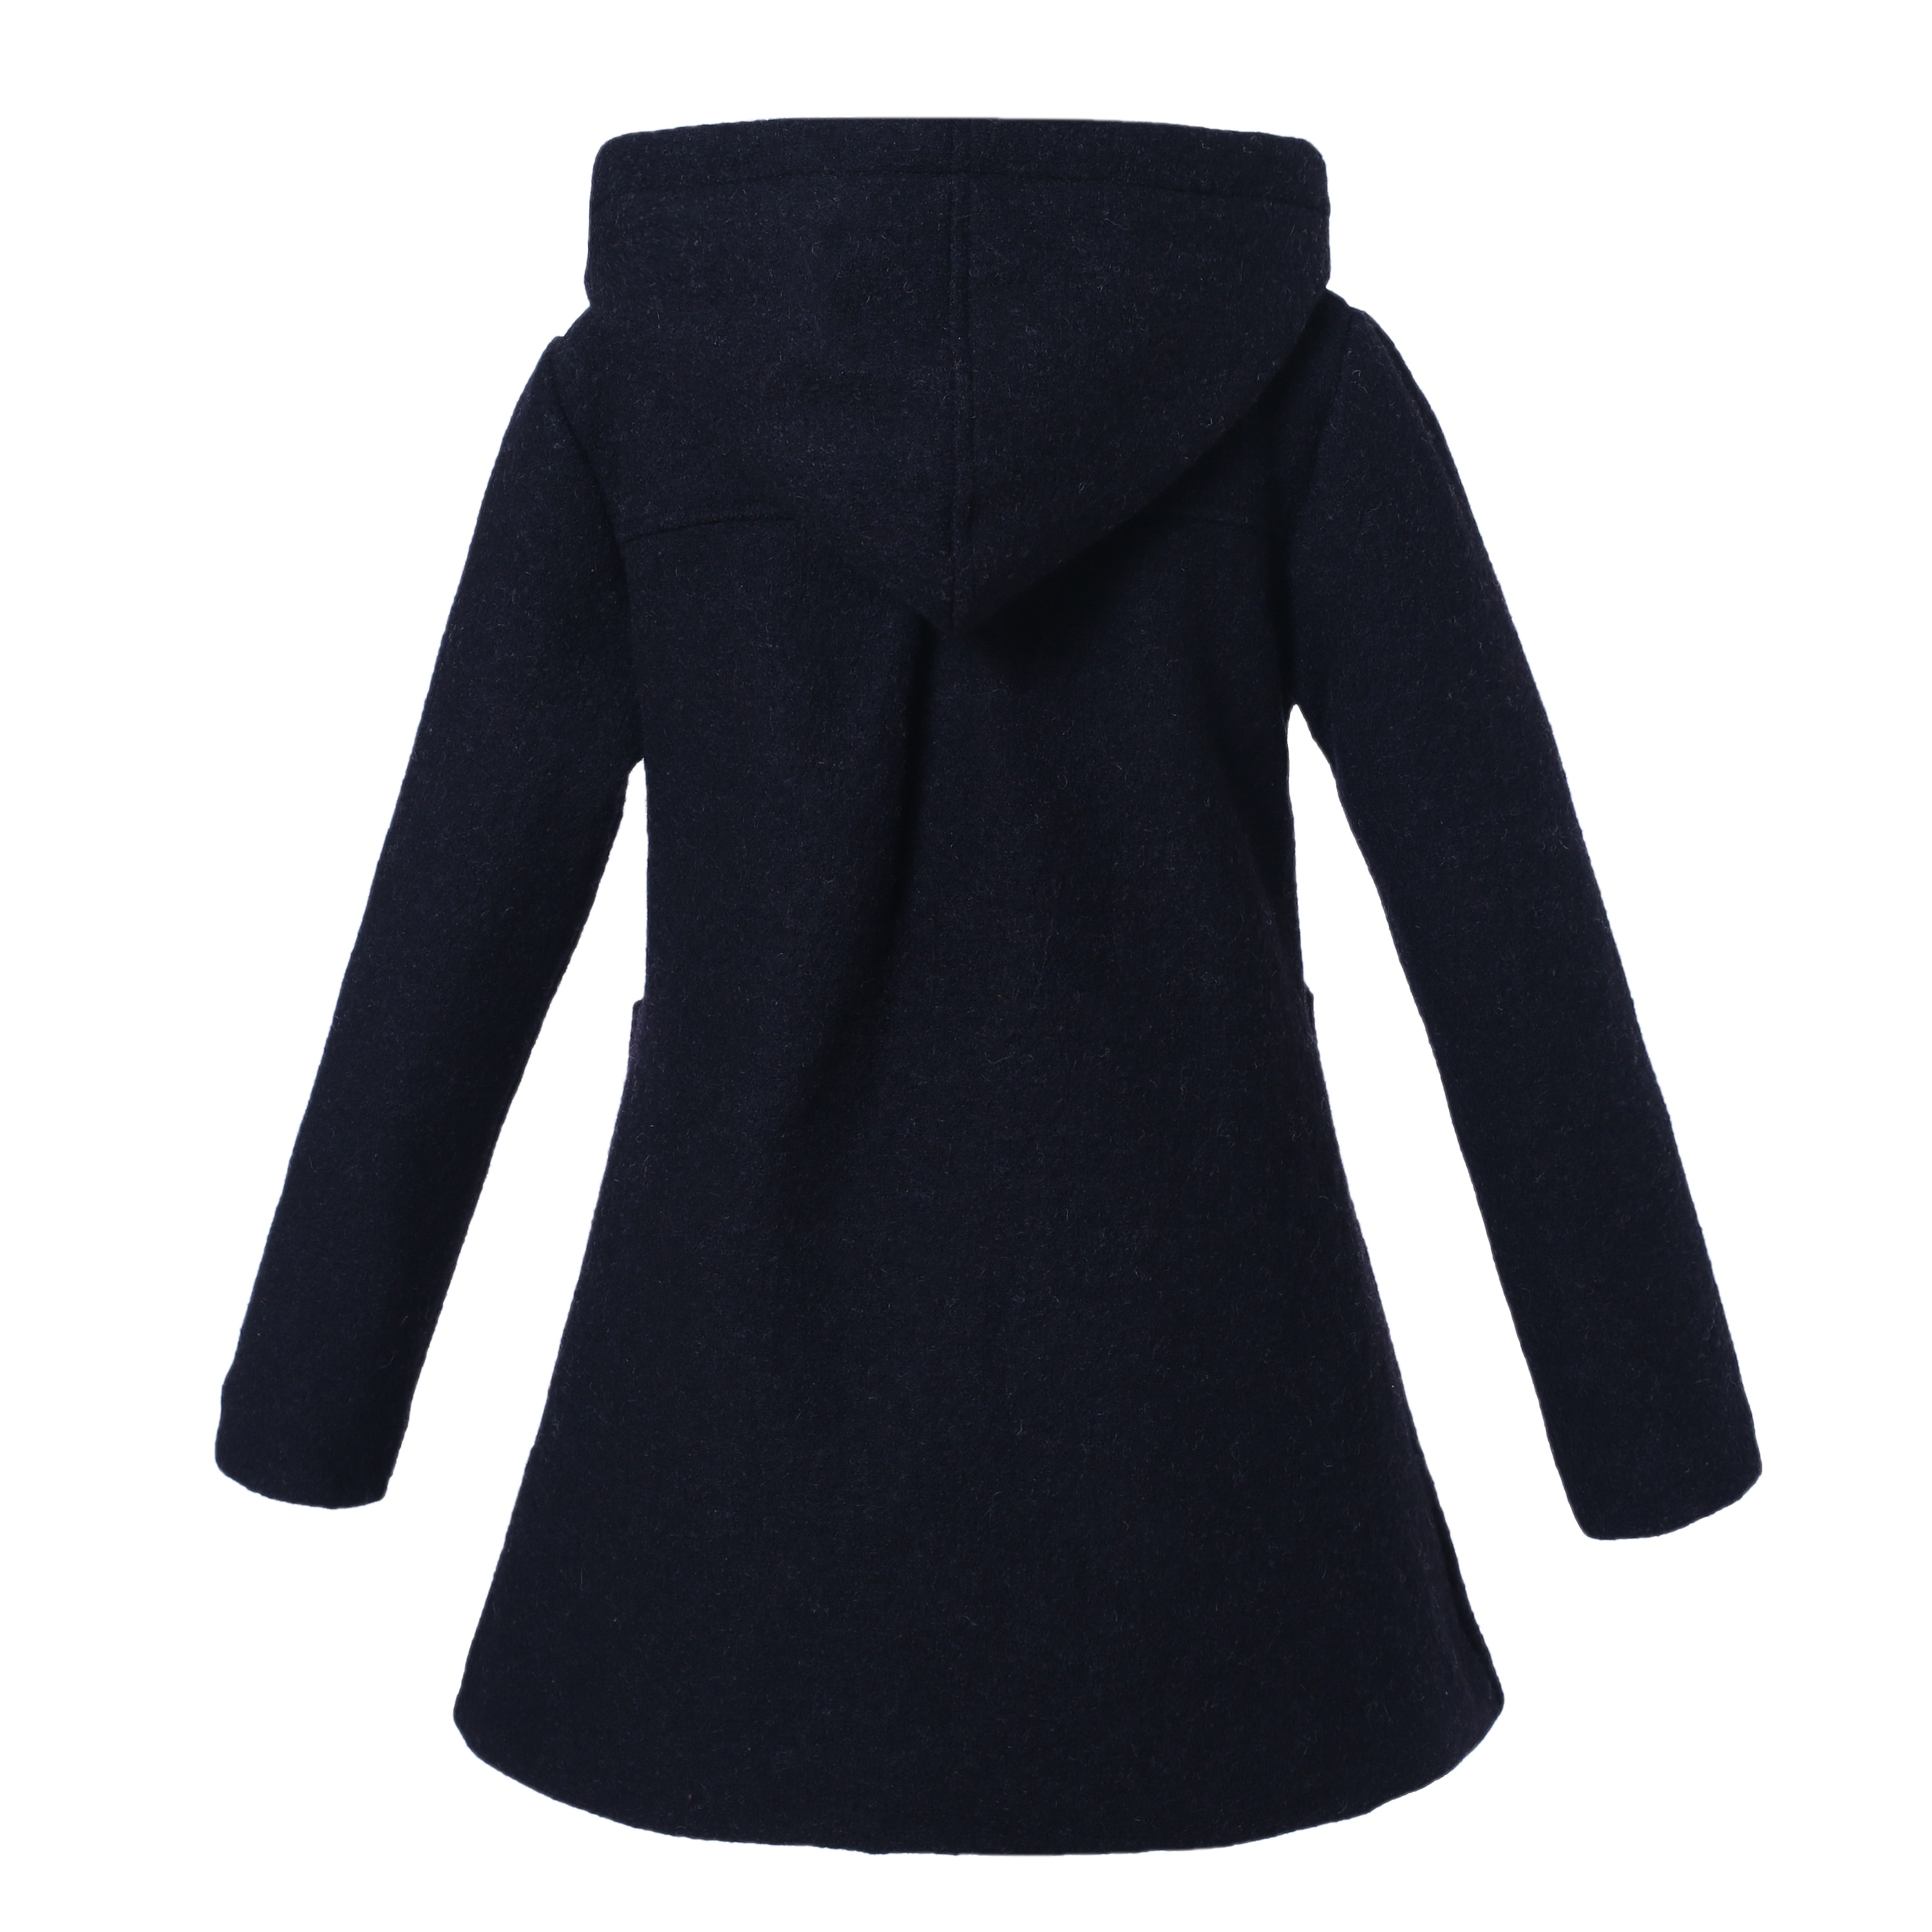 new style of 2019 latest style of 2019 thoughts on Richie House Girls' Wool jacket with hood